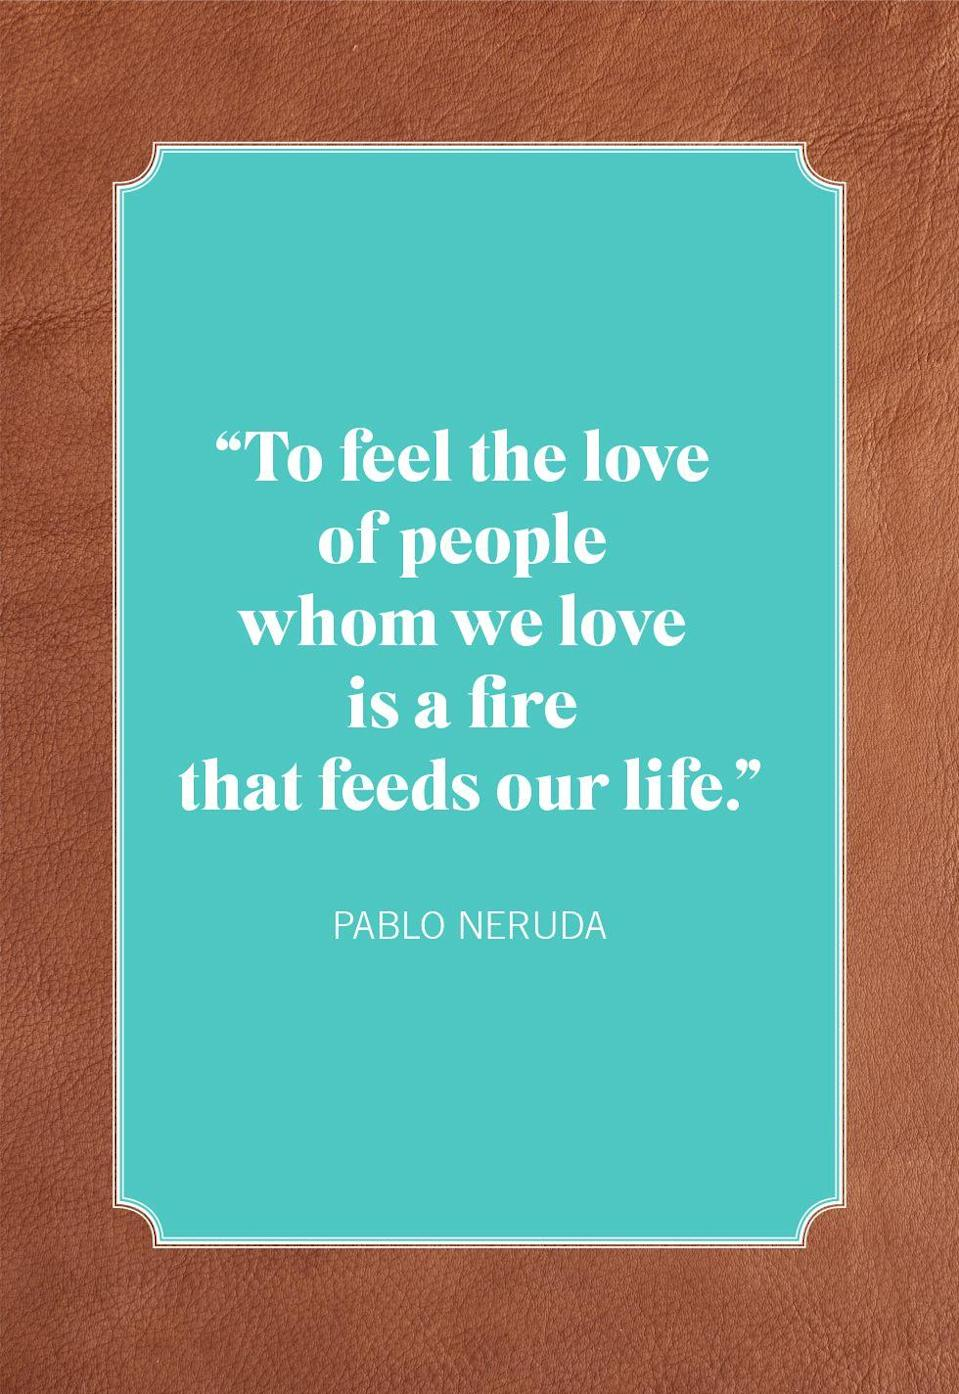 "<p>""To feel the love of people whom we love is a fire that feeds our life.""</p>"